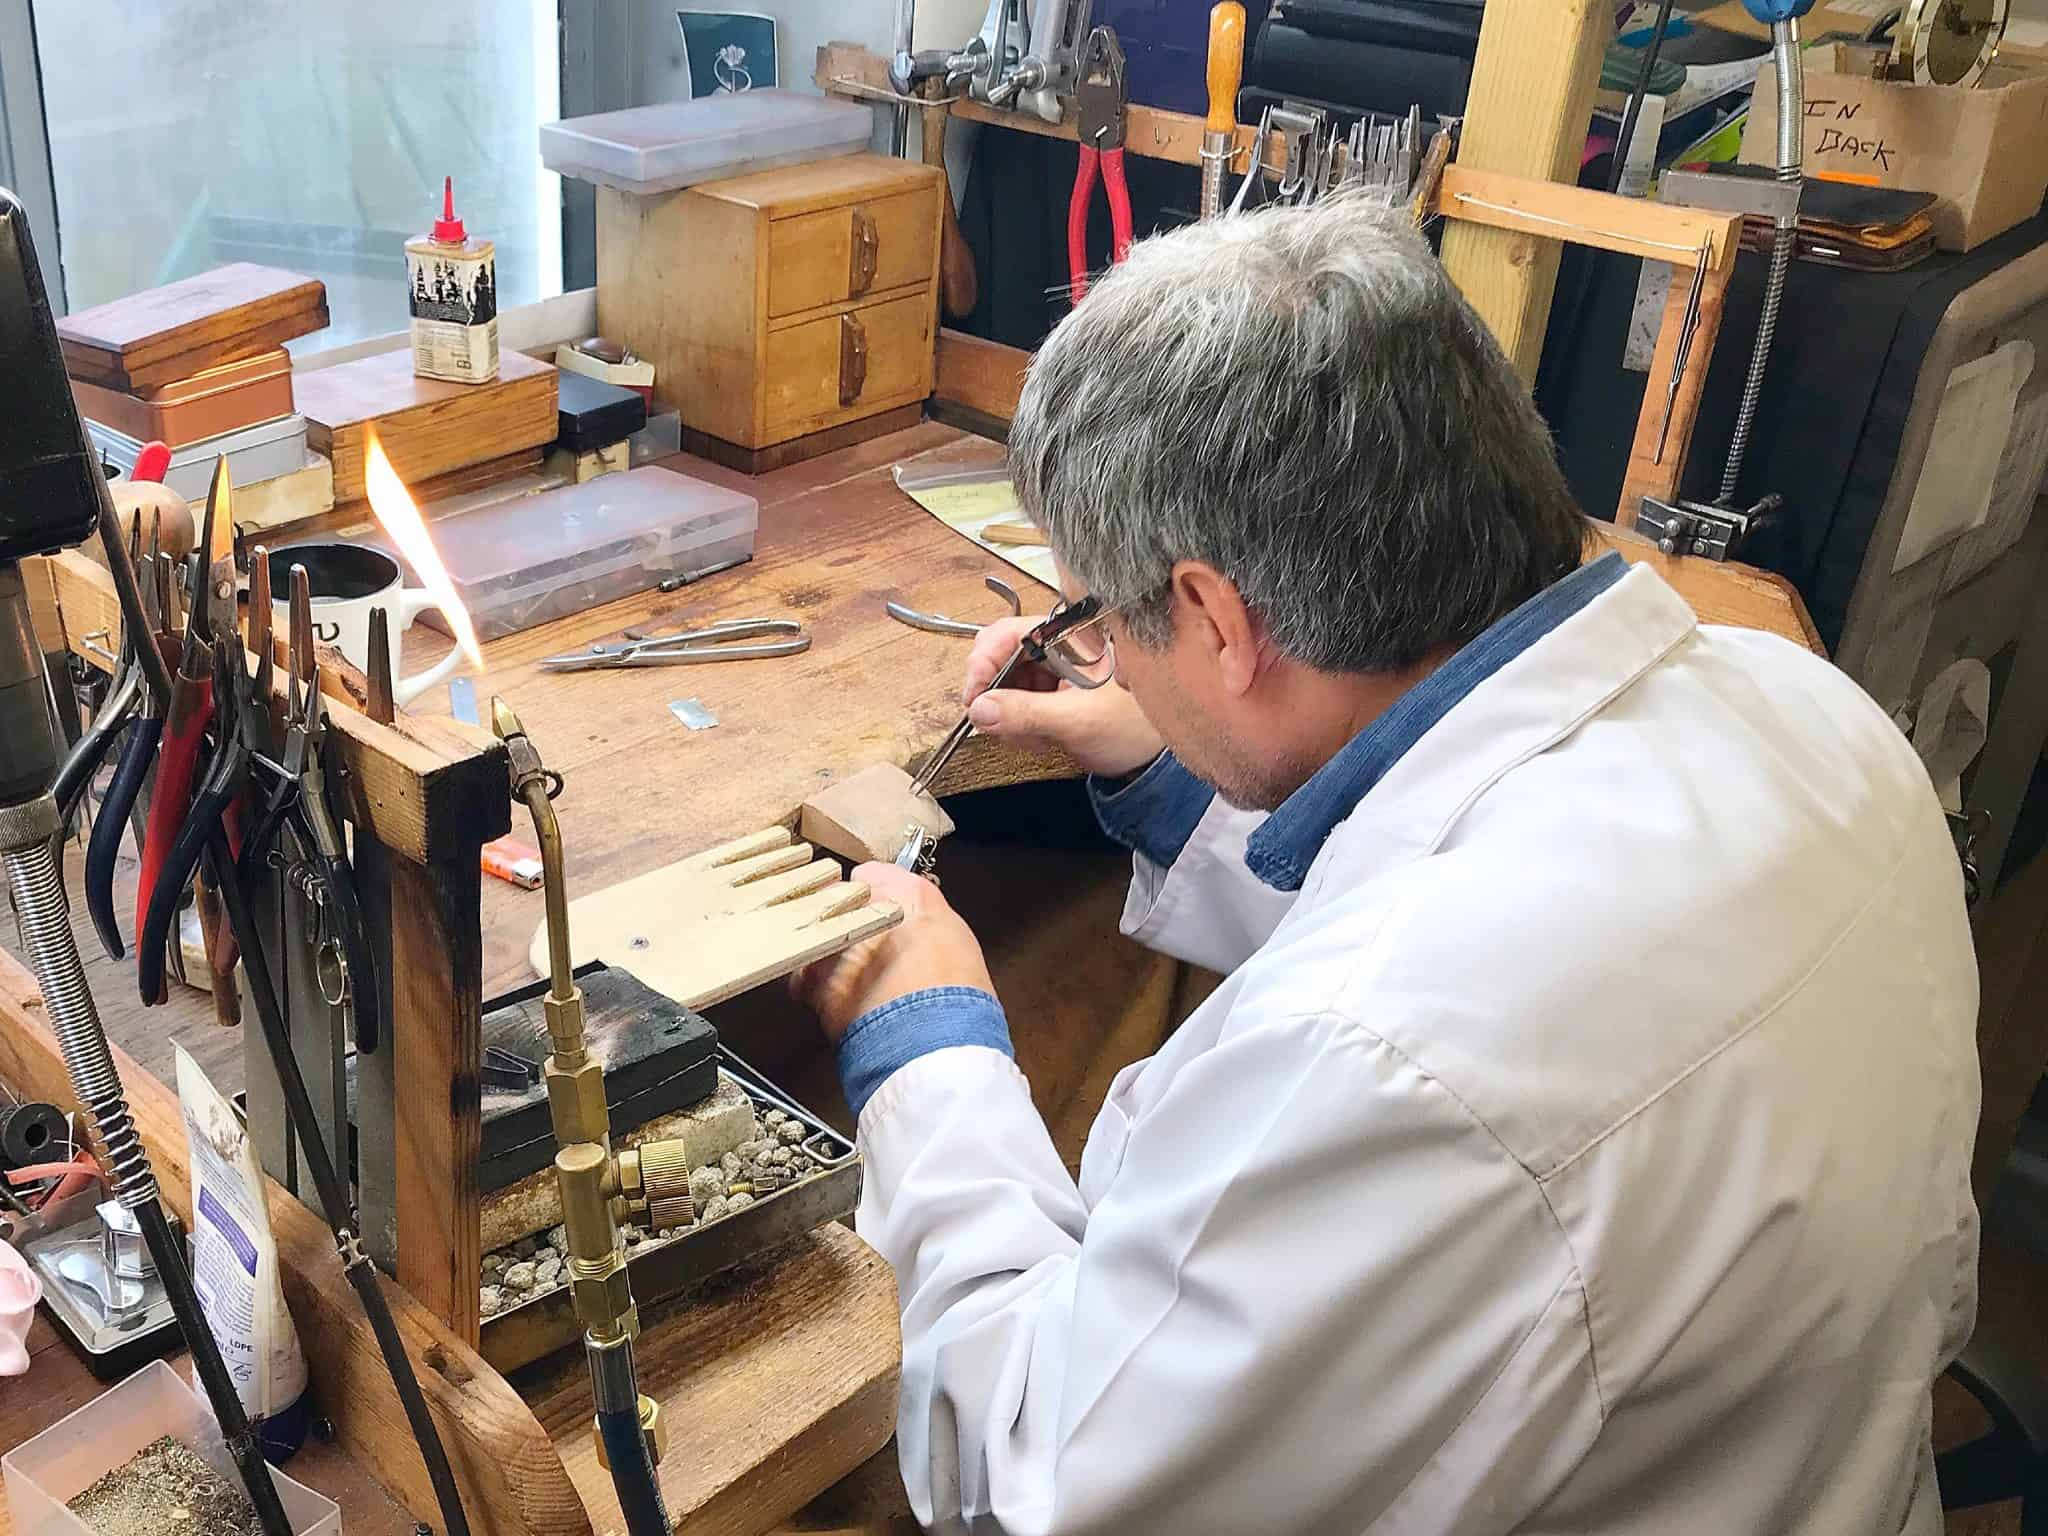 Glen making jewellery at The Goldsmithy Goldsmiths